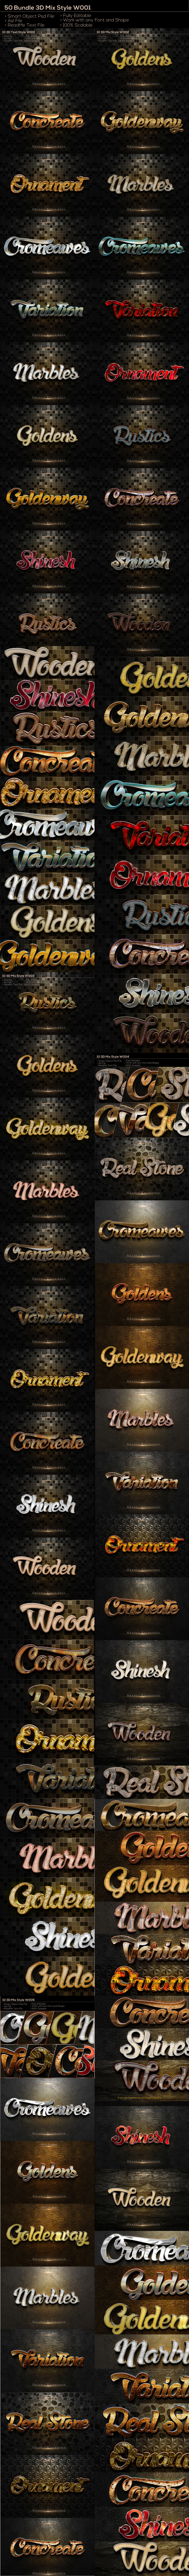 50  3D Text Style W001Okt - Text Effects Styles